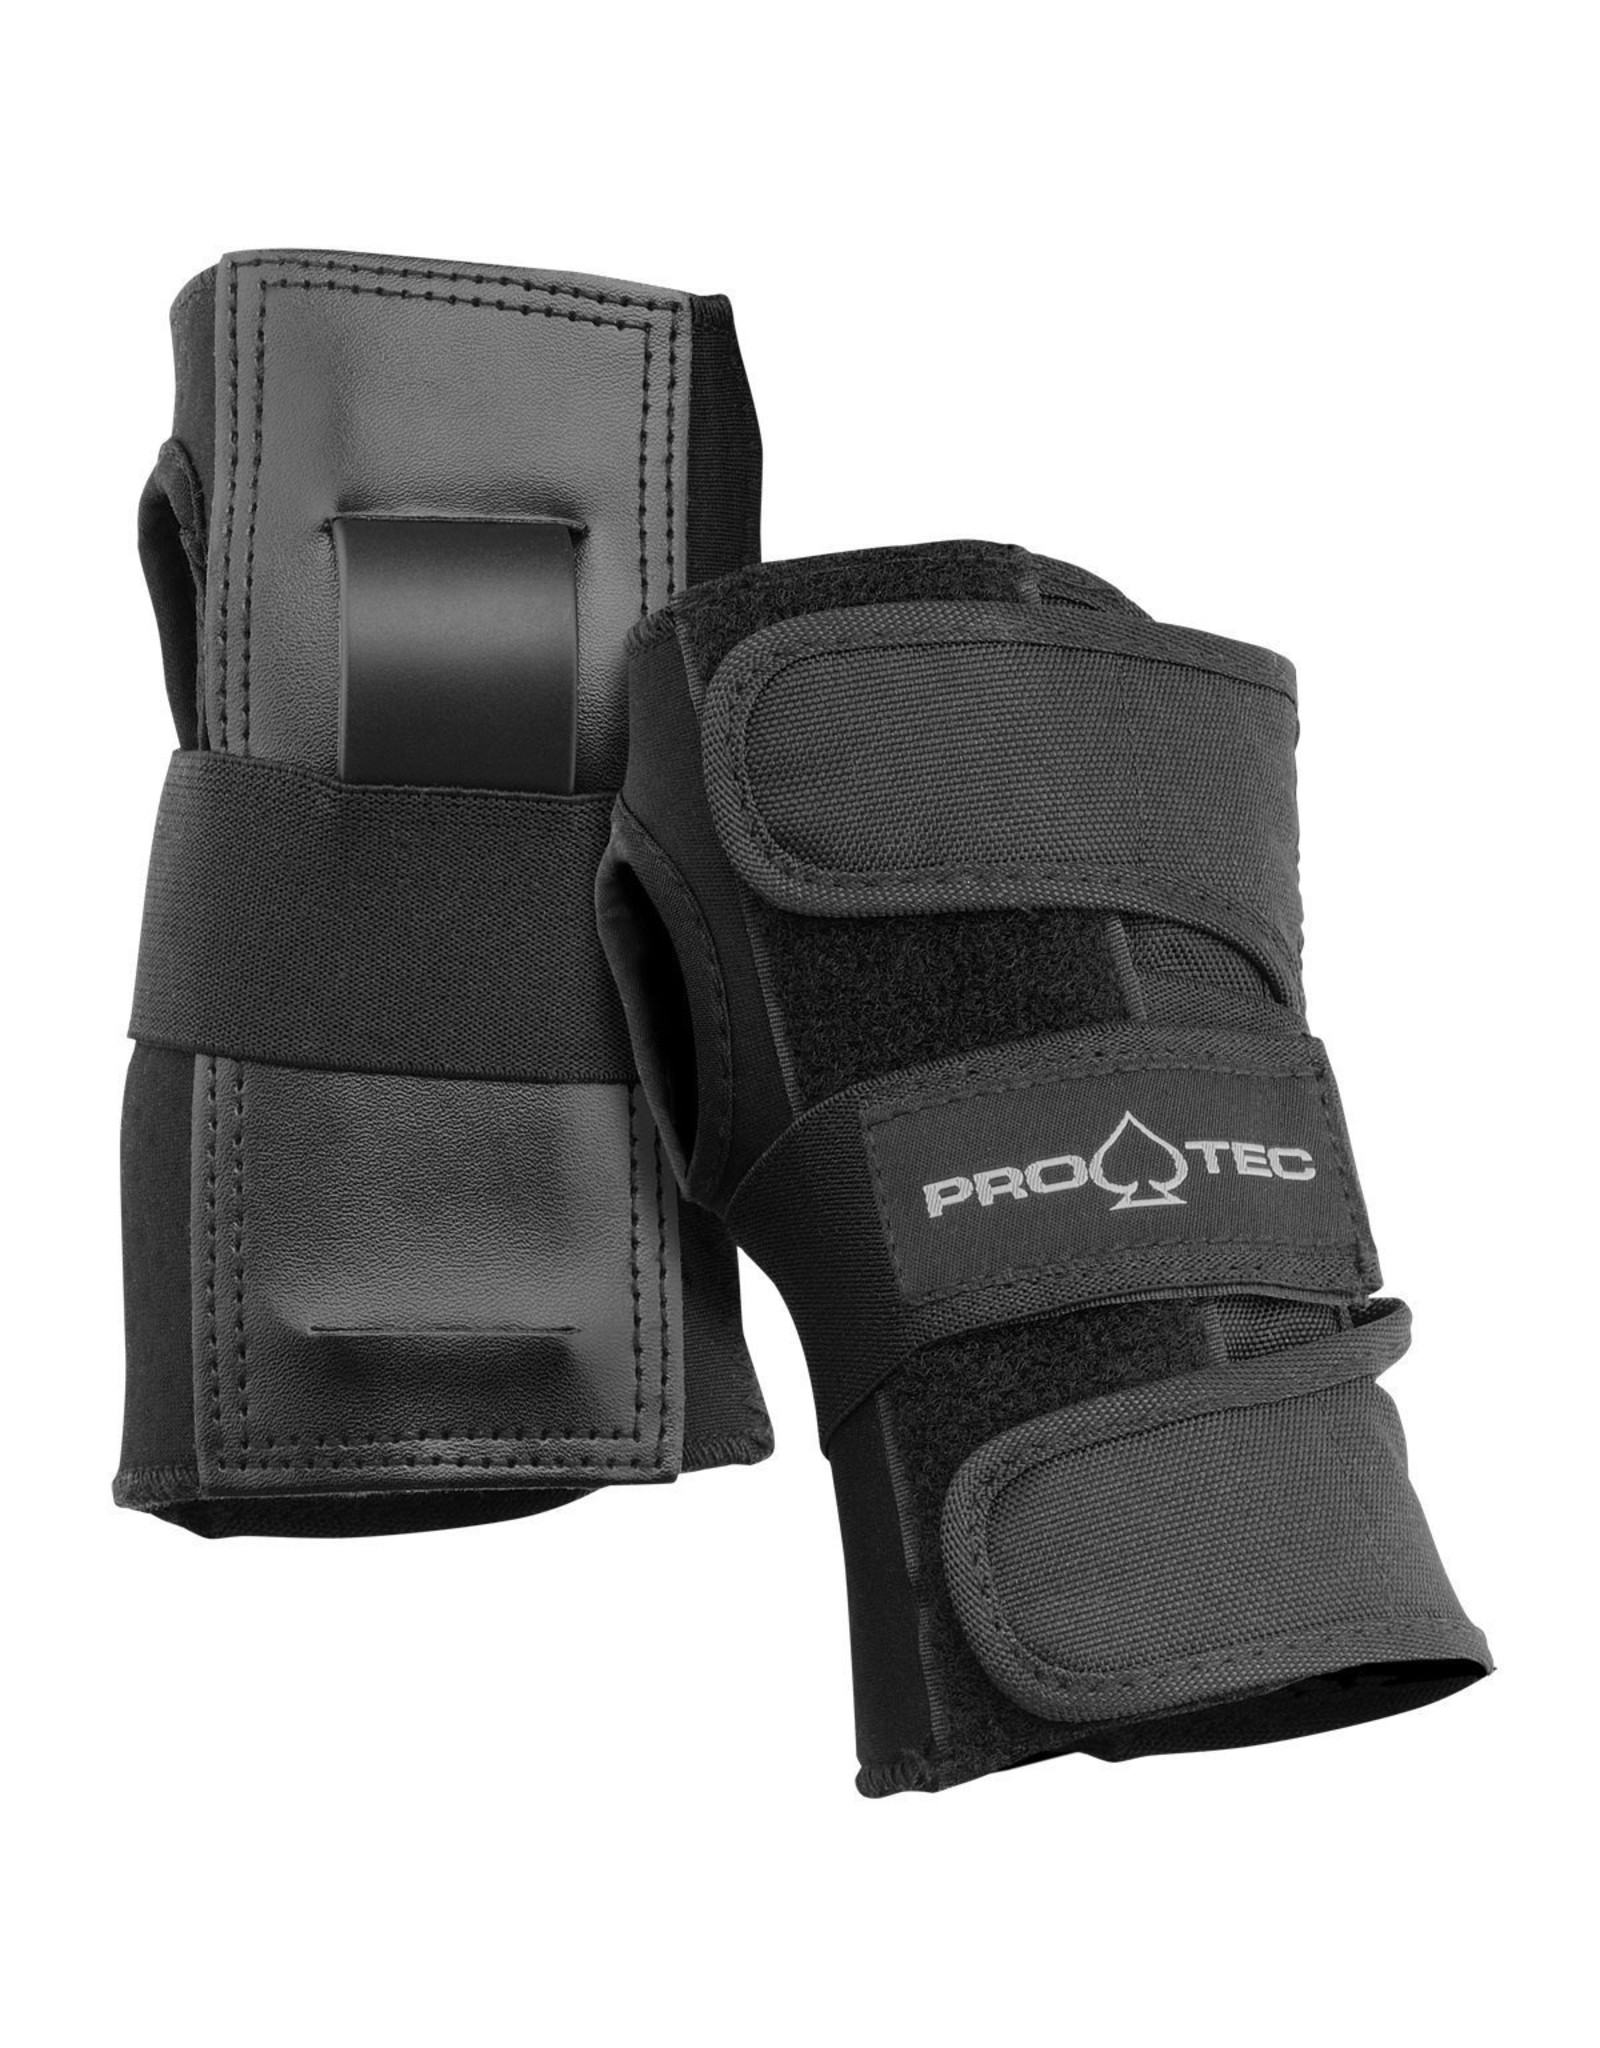 PRO-TEC PRO-TEC - JUNIOR 3-PACK PADS - BLACK